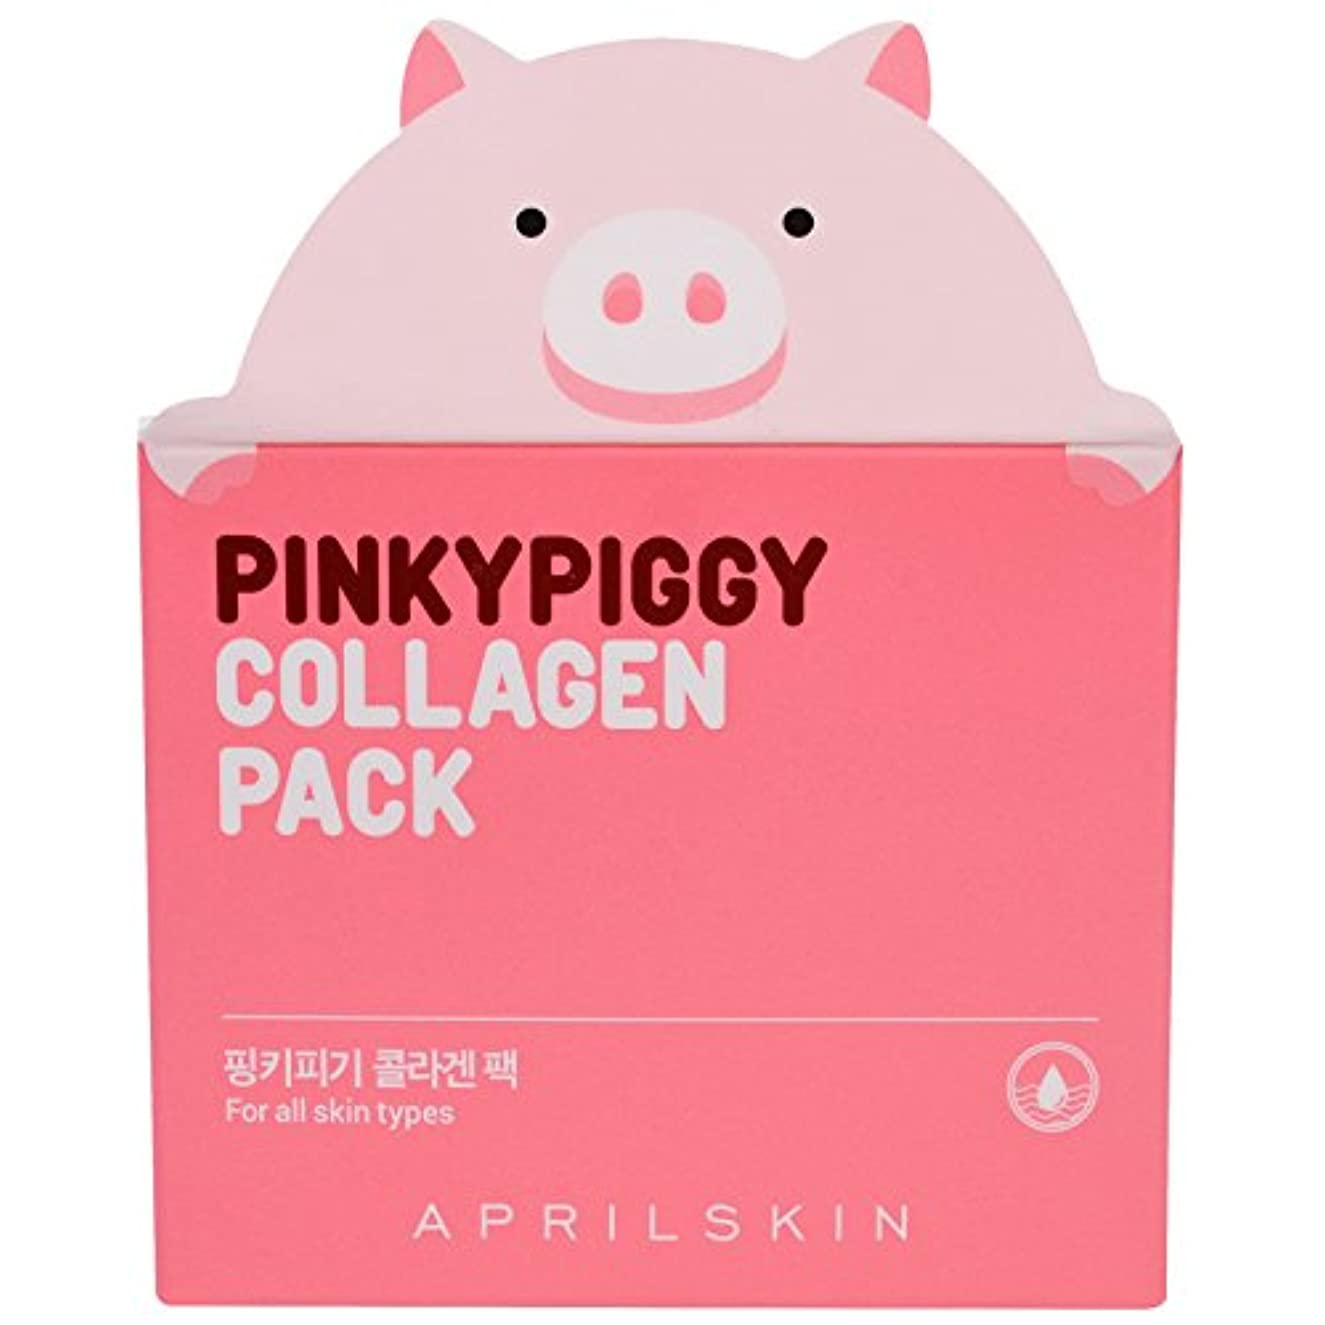 APRIL SKIN Pink Piggy Collagen Pack (並行輸入品)